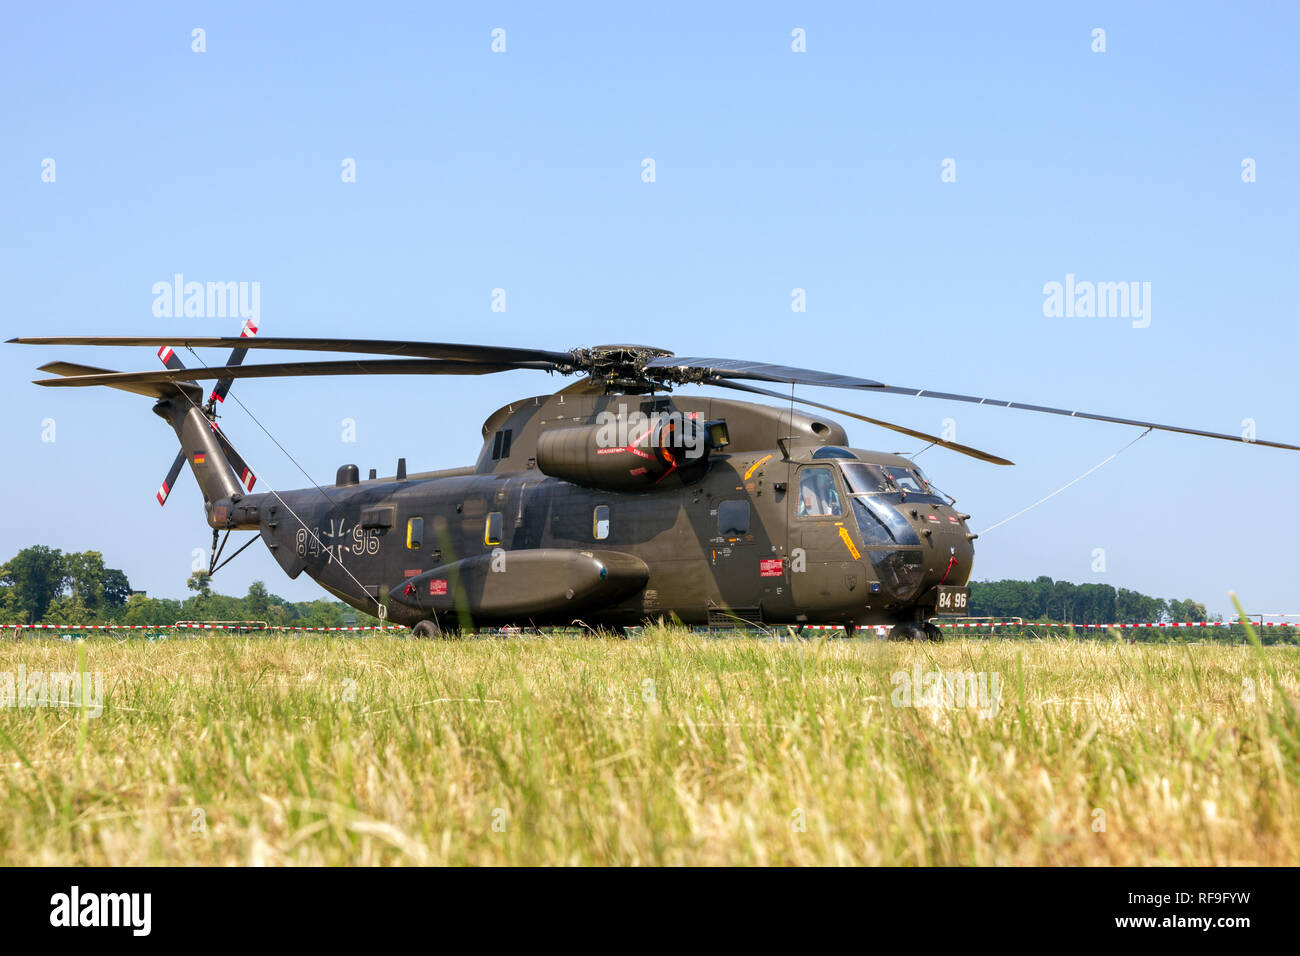 NORVENICH, GERMANY - JUNE 12, 2015: German army Sikorsky CH-53 Stallion transport helicopter at Norvenich airbase. - Stock Image